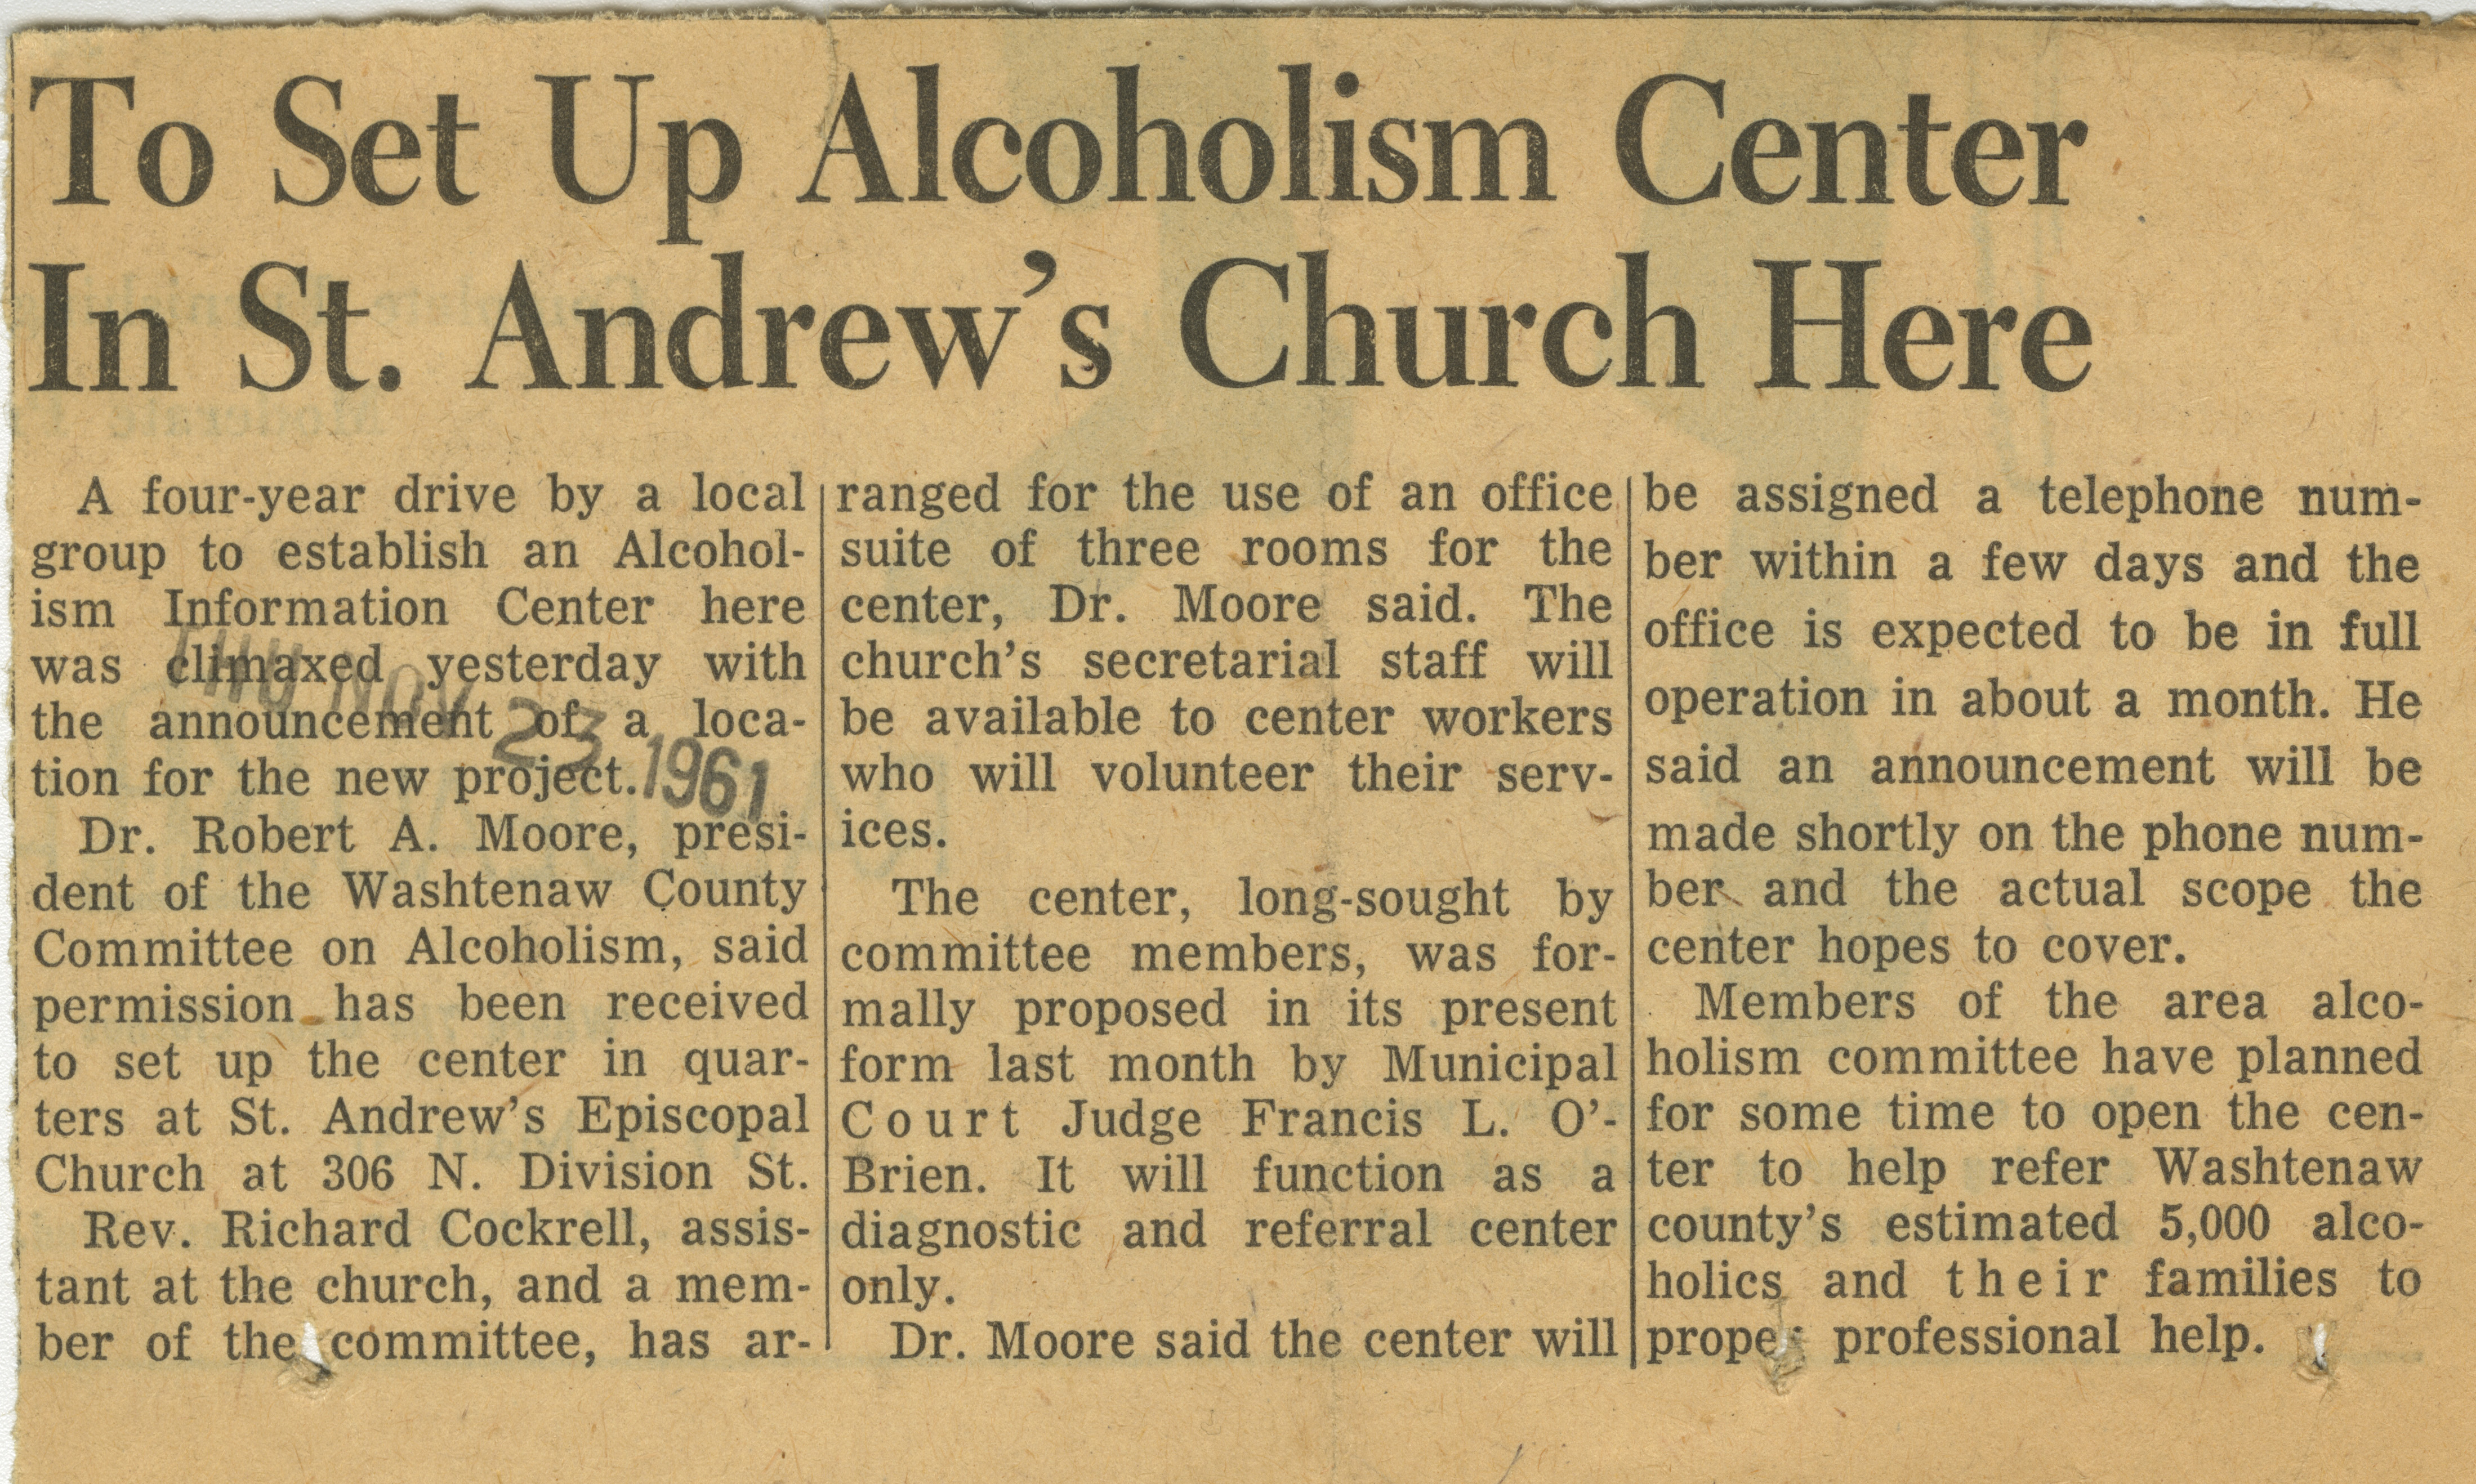 To Set Up Alcoholism Center In St. Andrew's Church Here image